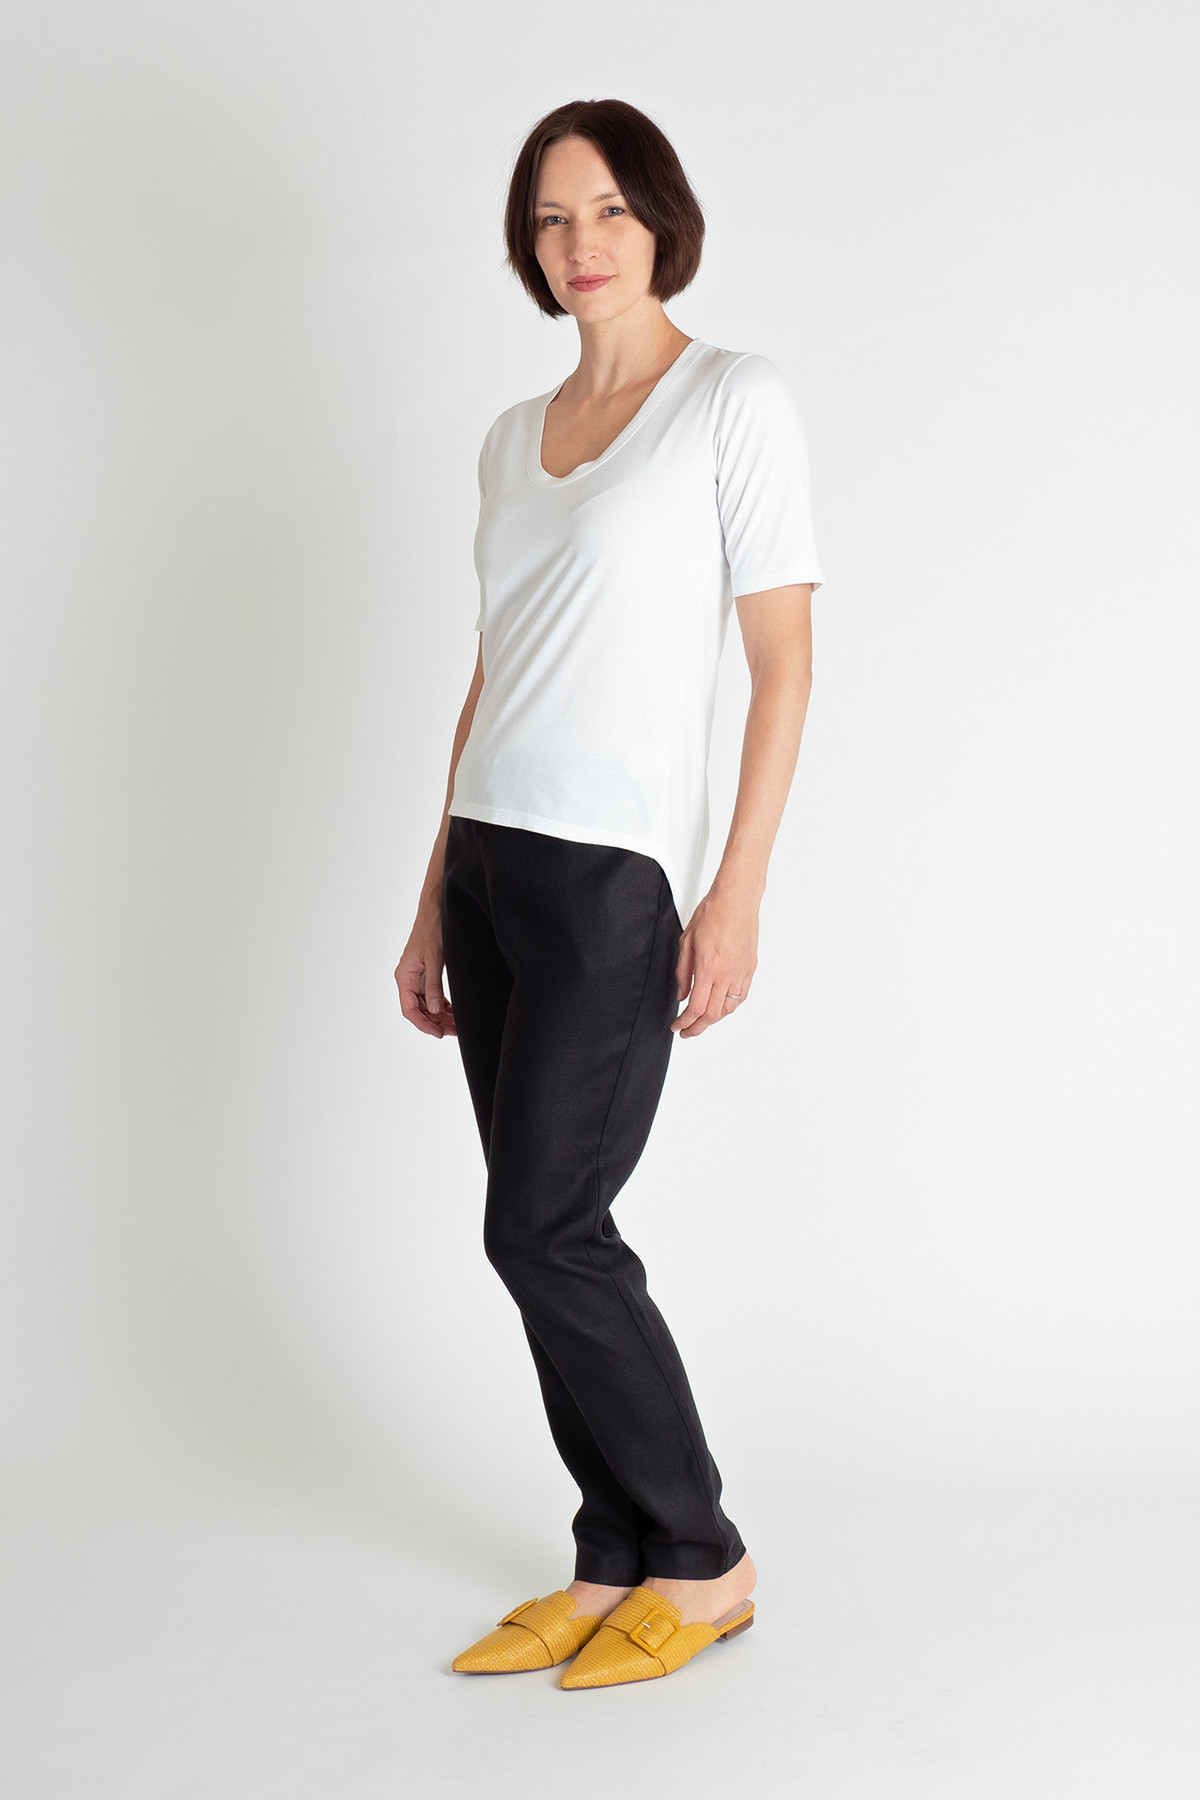 • Premium Australian-woven organic cotton—lightweight and soft-to-touch • Scoop neck • Slim fit • Generous, hemline with additional length at back • Half-length sleeves • Contrast black binding inside collar • Contrast black top stitching • Pre-washed for a lasting, perfect fit • Designed and made ethically in Melbourne, Australia